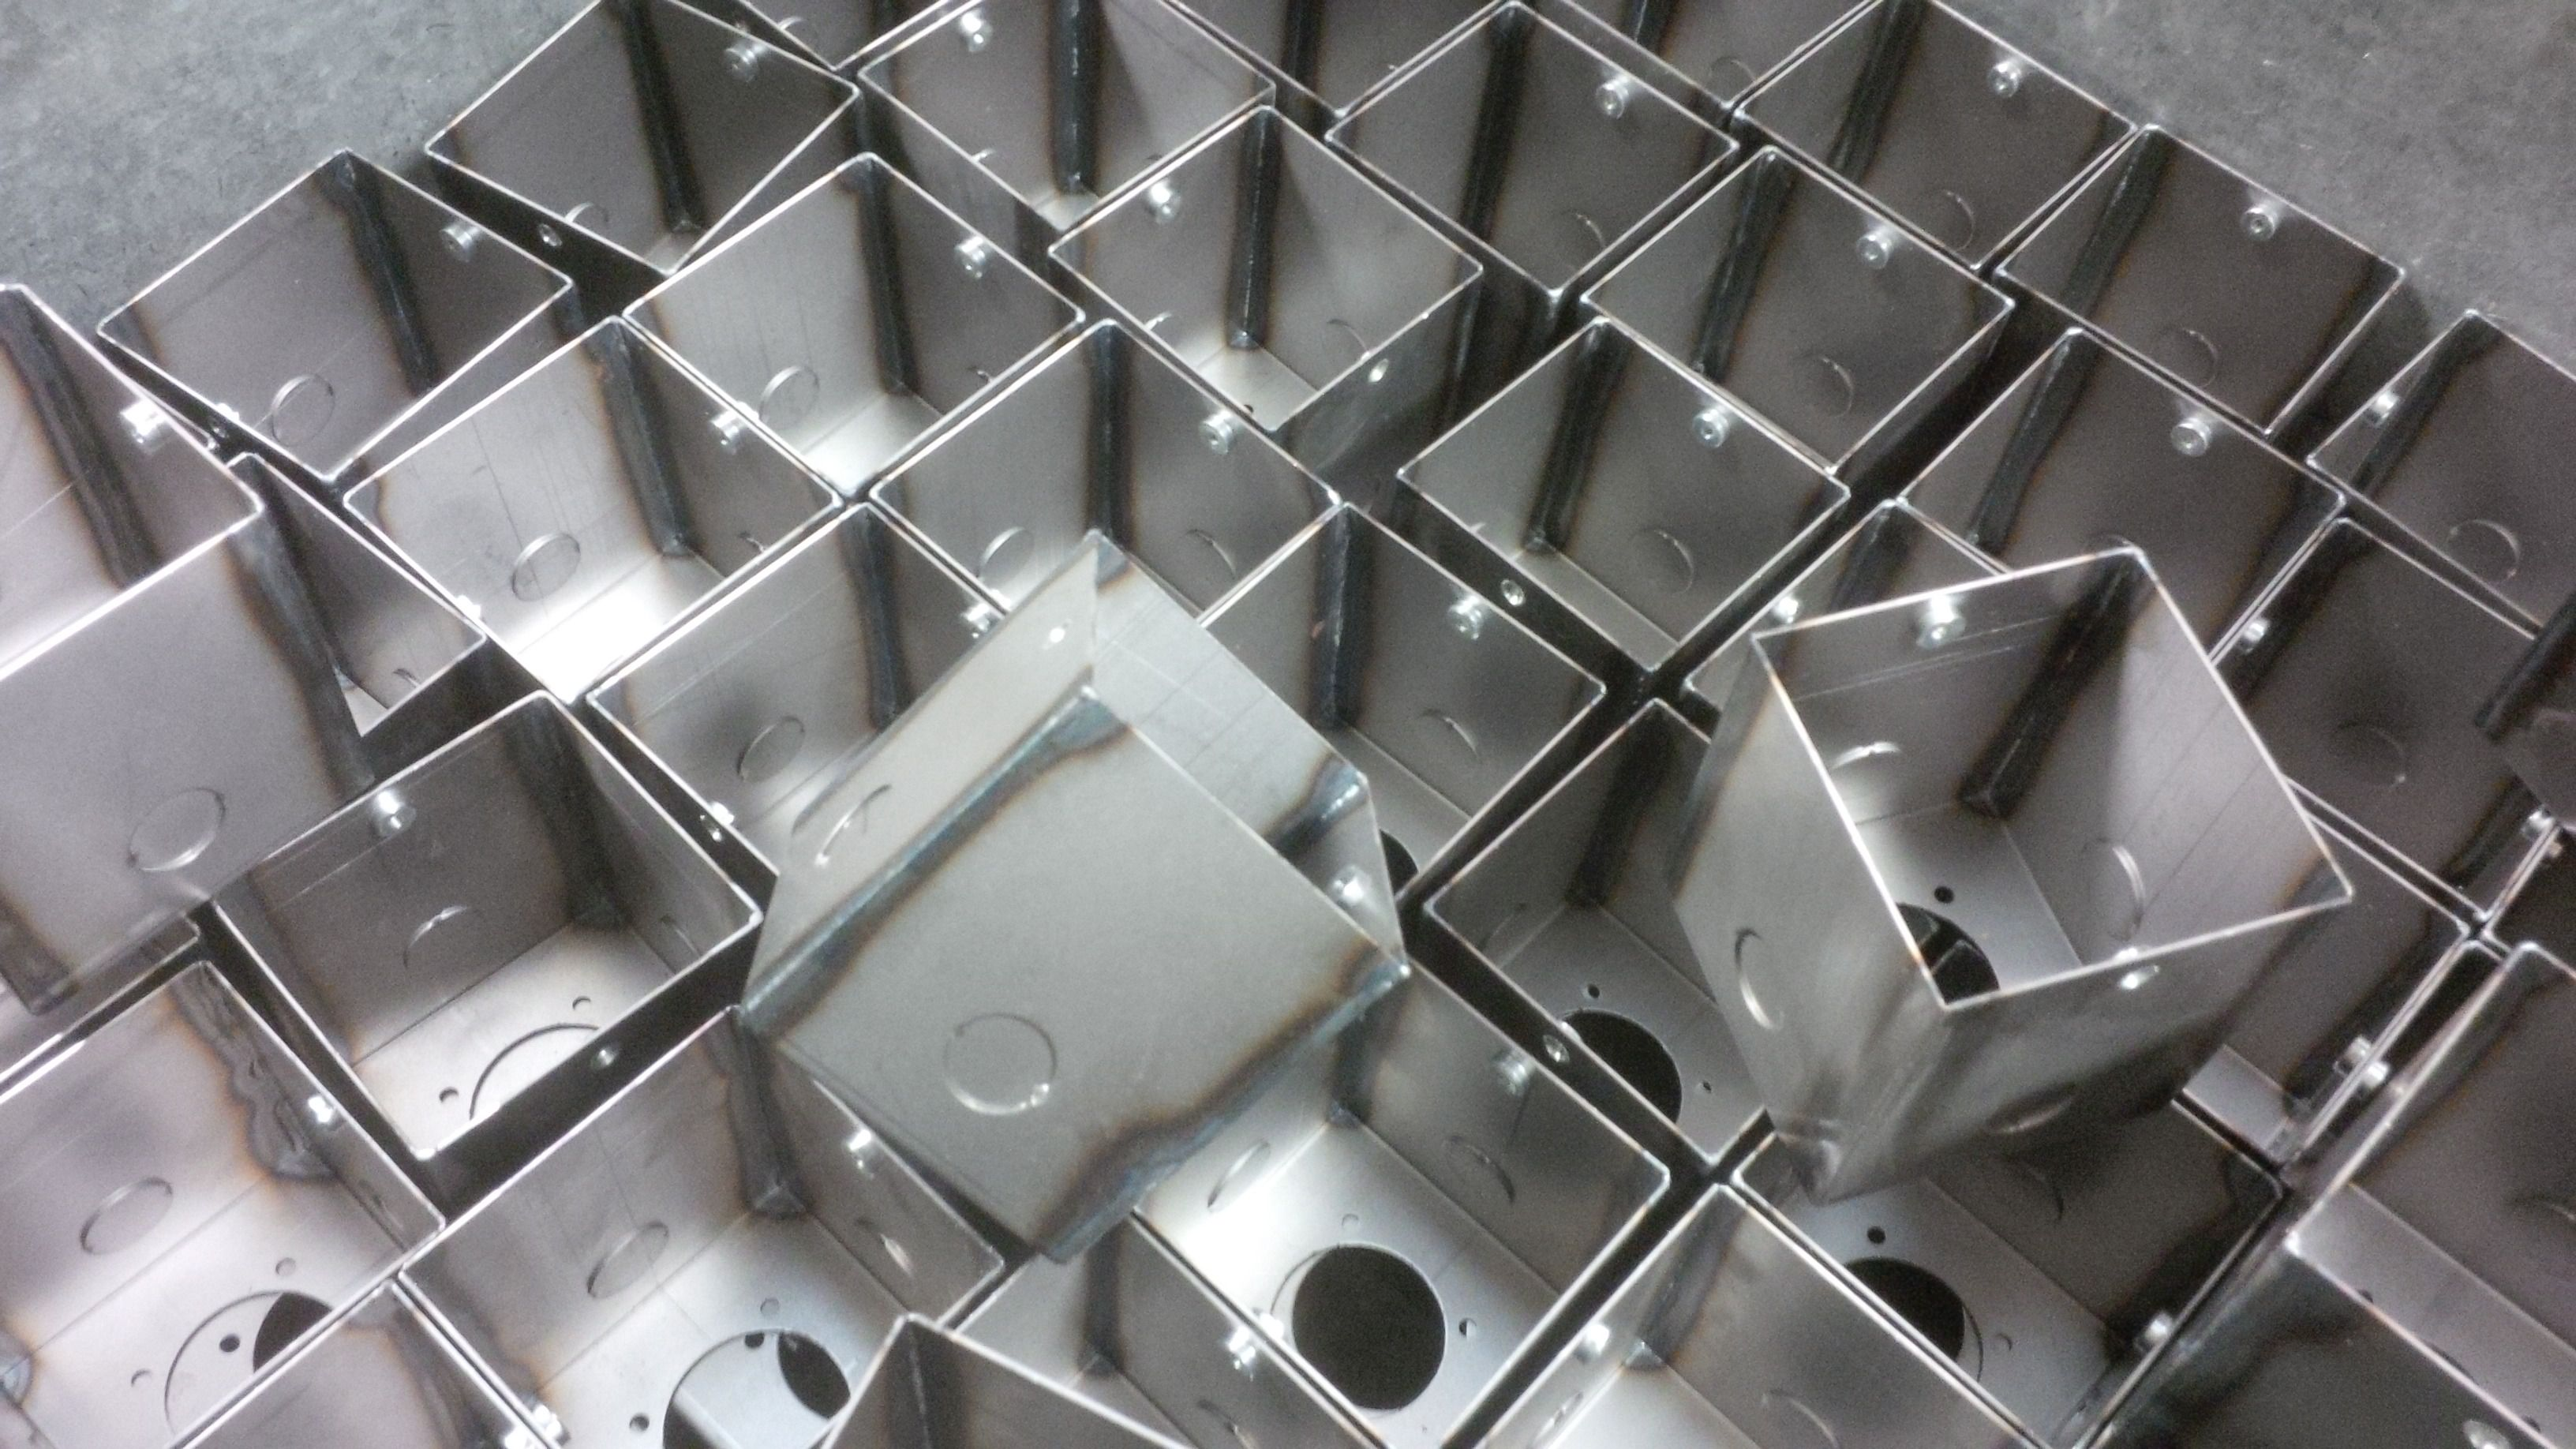 Sheet Metal Boxes Manufactured From Mild Steel With Seam Welded Joints Www Vandf Co Uk Sheet Metal Work Metal Working Sheet Metal